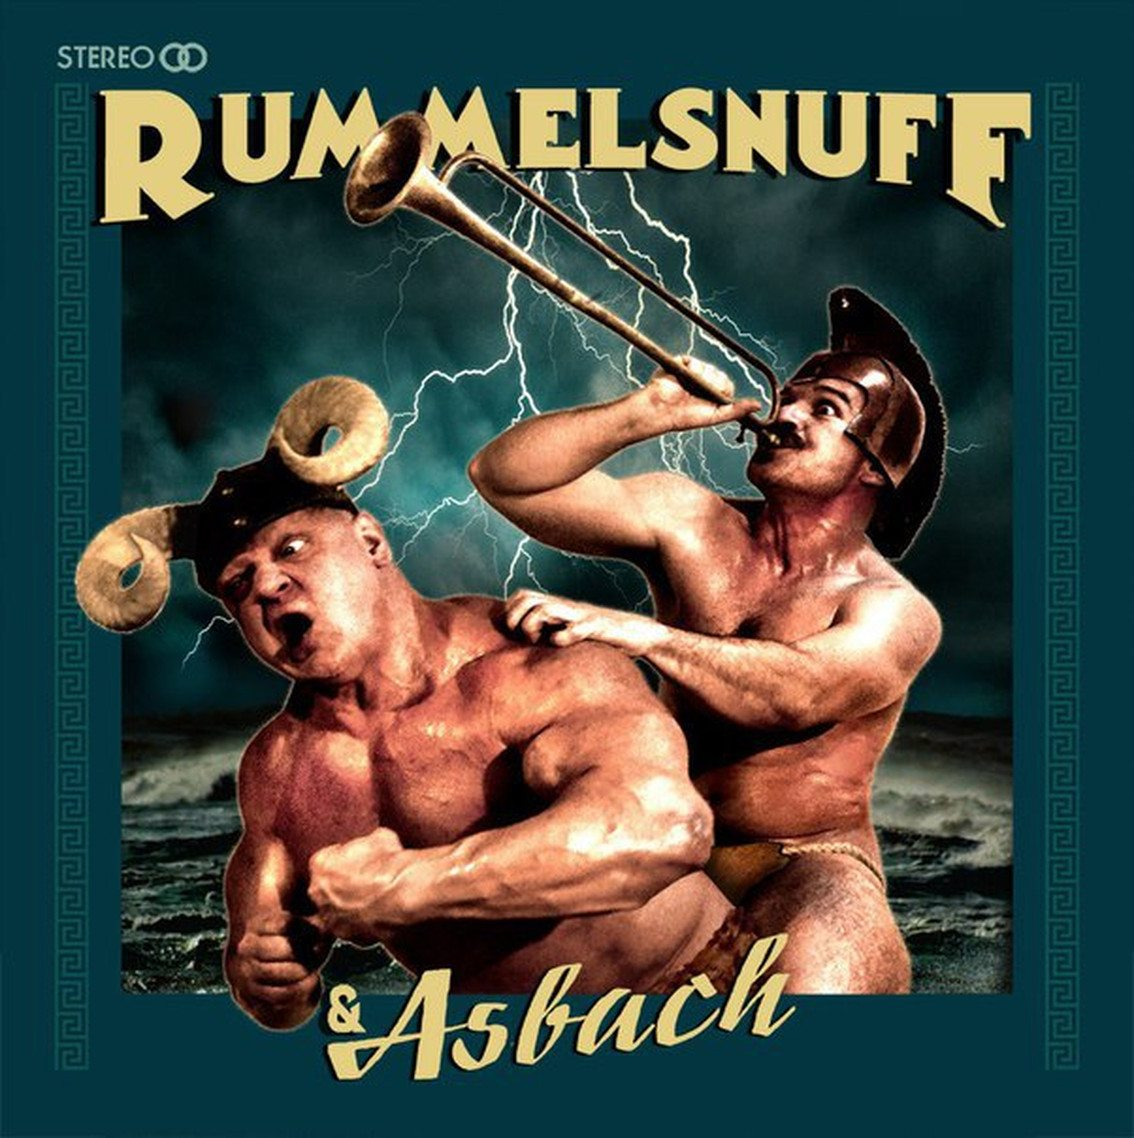 5th album Rummelsnuff,'Rummelsnuff & Asbach', gets a vinyl and 2CD release